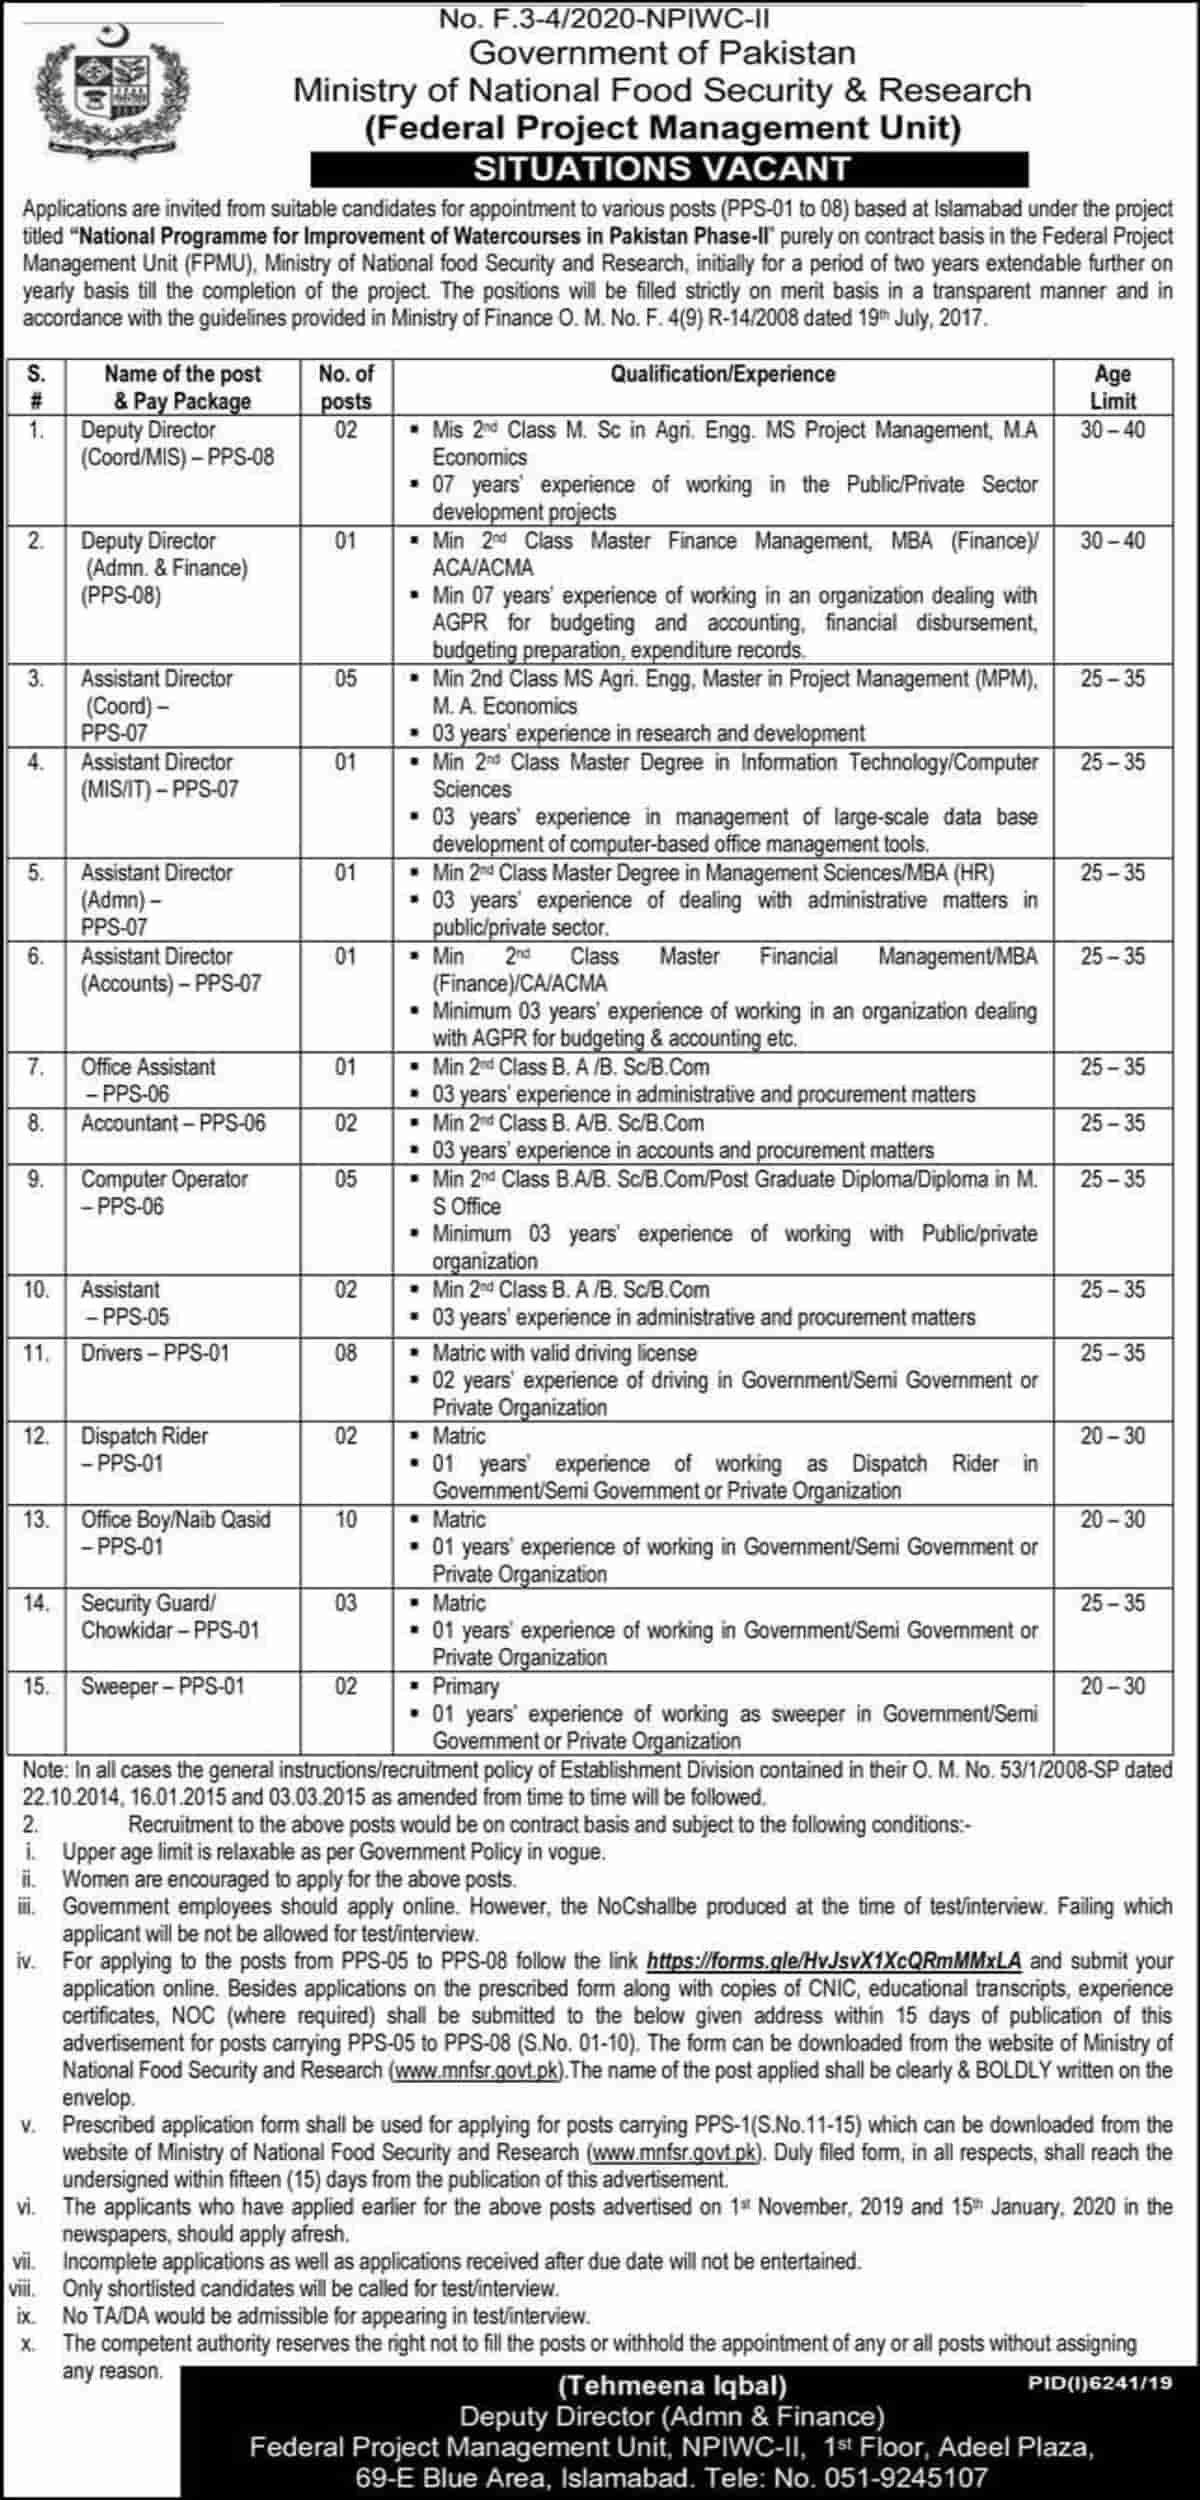 Ministry of National Food Security and Research Jobs 2020 www.mnfsr.gov.pk 2